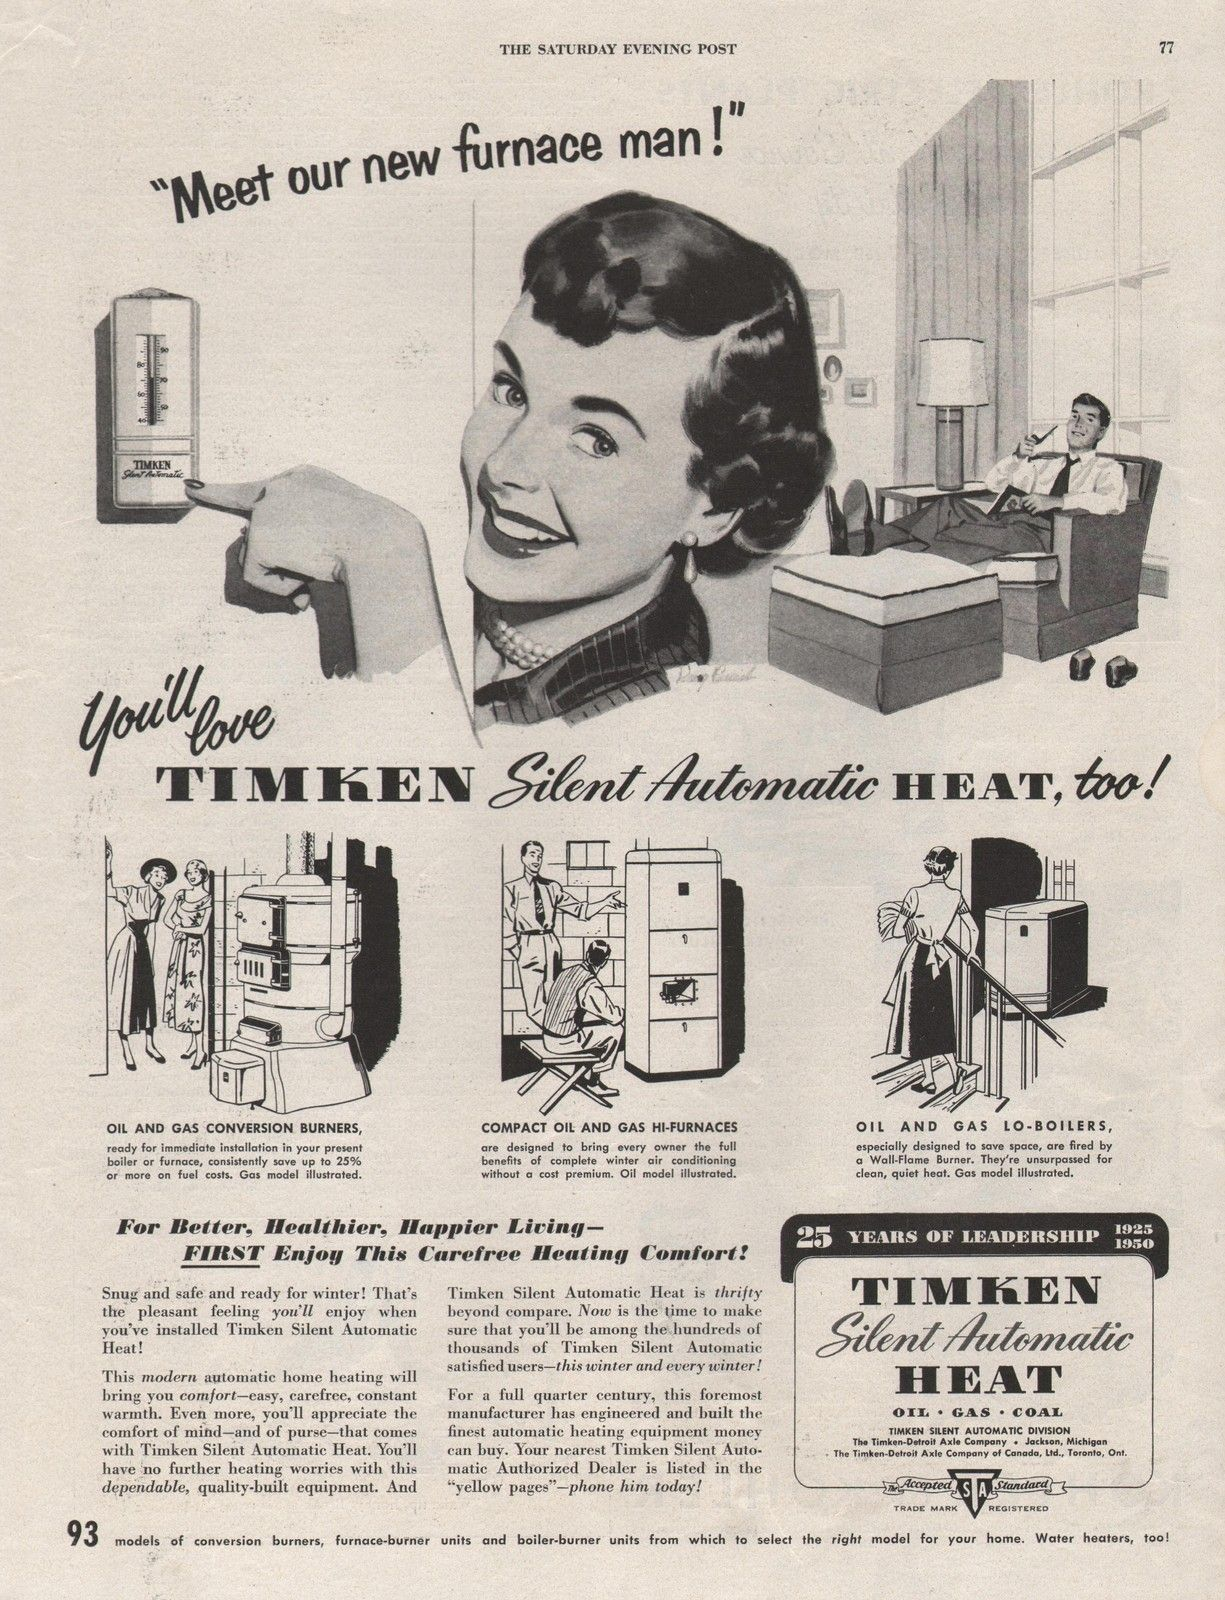 1950 Vintage TIMKEN Silent Automatic Heat Meet Our New